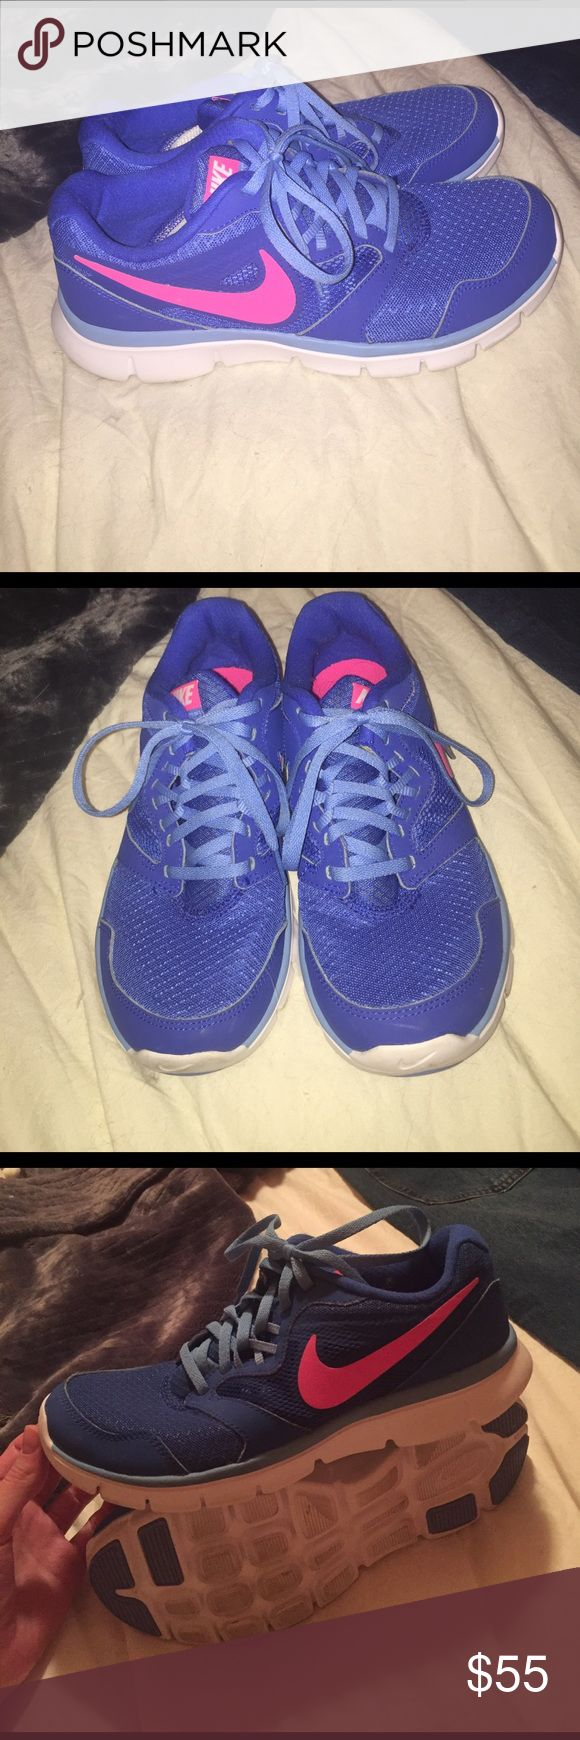 Blue and pink Nike sneakers tennis shoes Nike flex experience RN 3 shoes. Great for sports, errands, running, etc. really fun colors. Only worn once and just around the house to test out but too small on me. Super cute! Nike Shoes Athletic Shoes